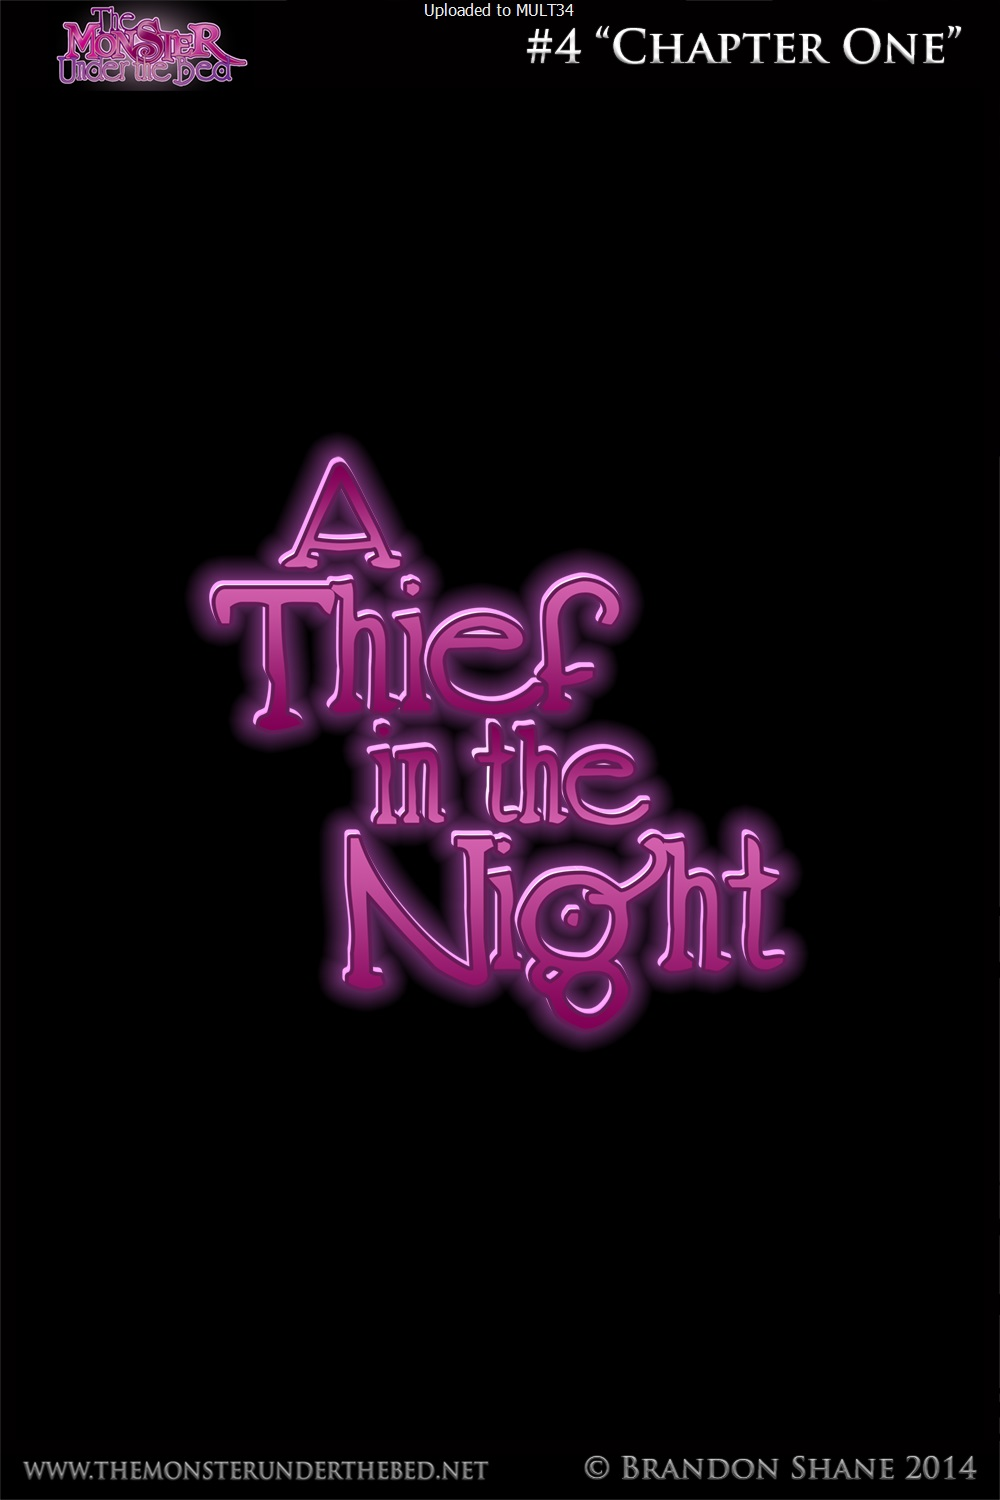 004_a_thief_in_the_night